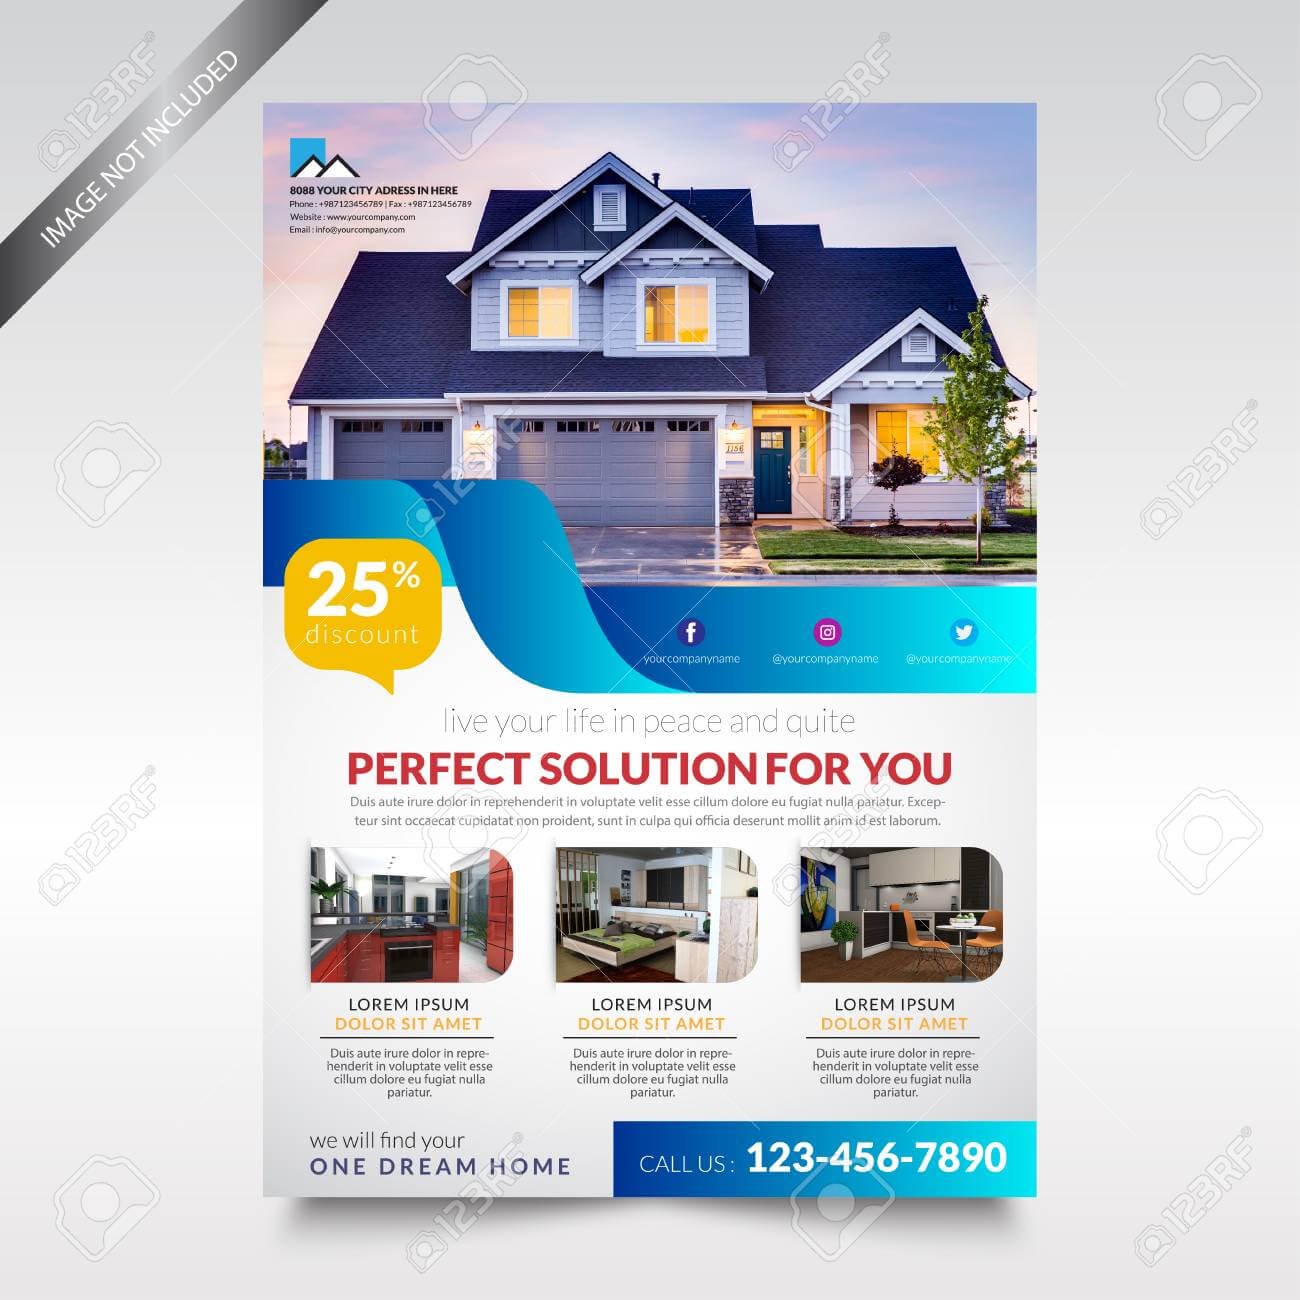 015 Real Estate Flyer Template Brochure Design Ideas inside Real Estate Brochure Templates Psd Free Download